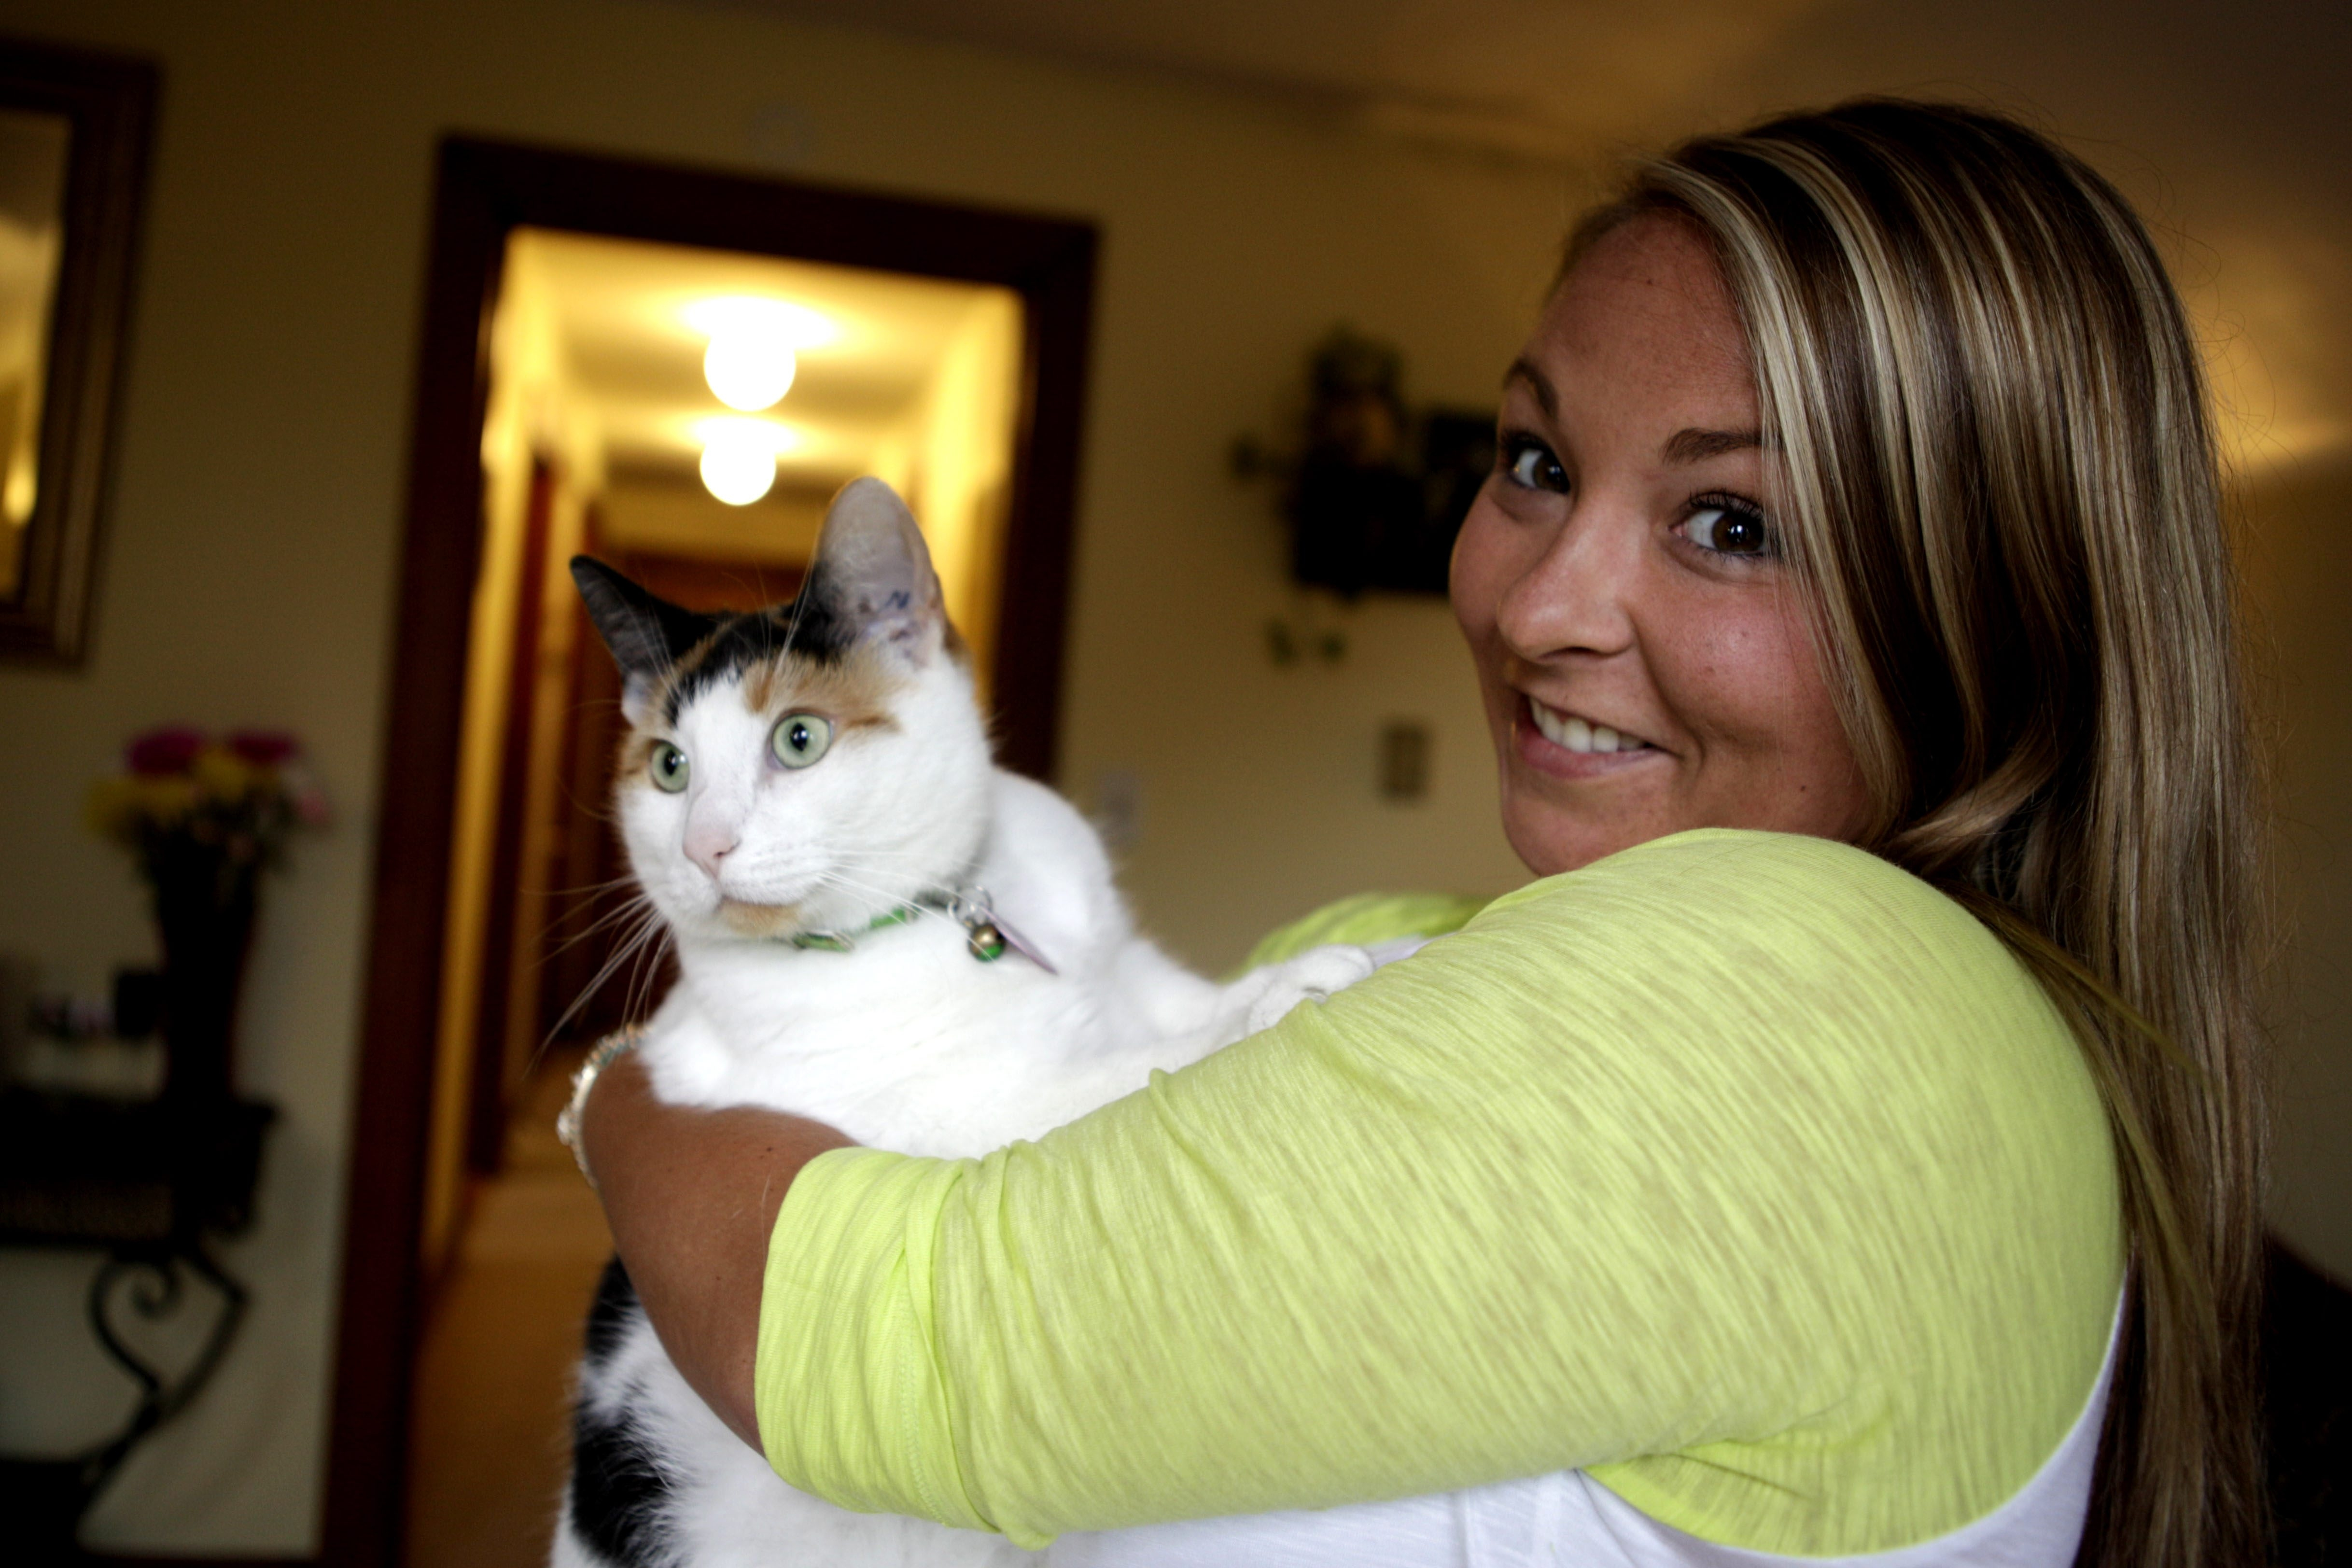 Stephanie Serafini takes in foster cats at her home in South Buffalo. Sweet-natured Clawdia was her first foster cat.